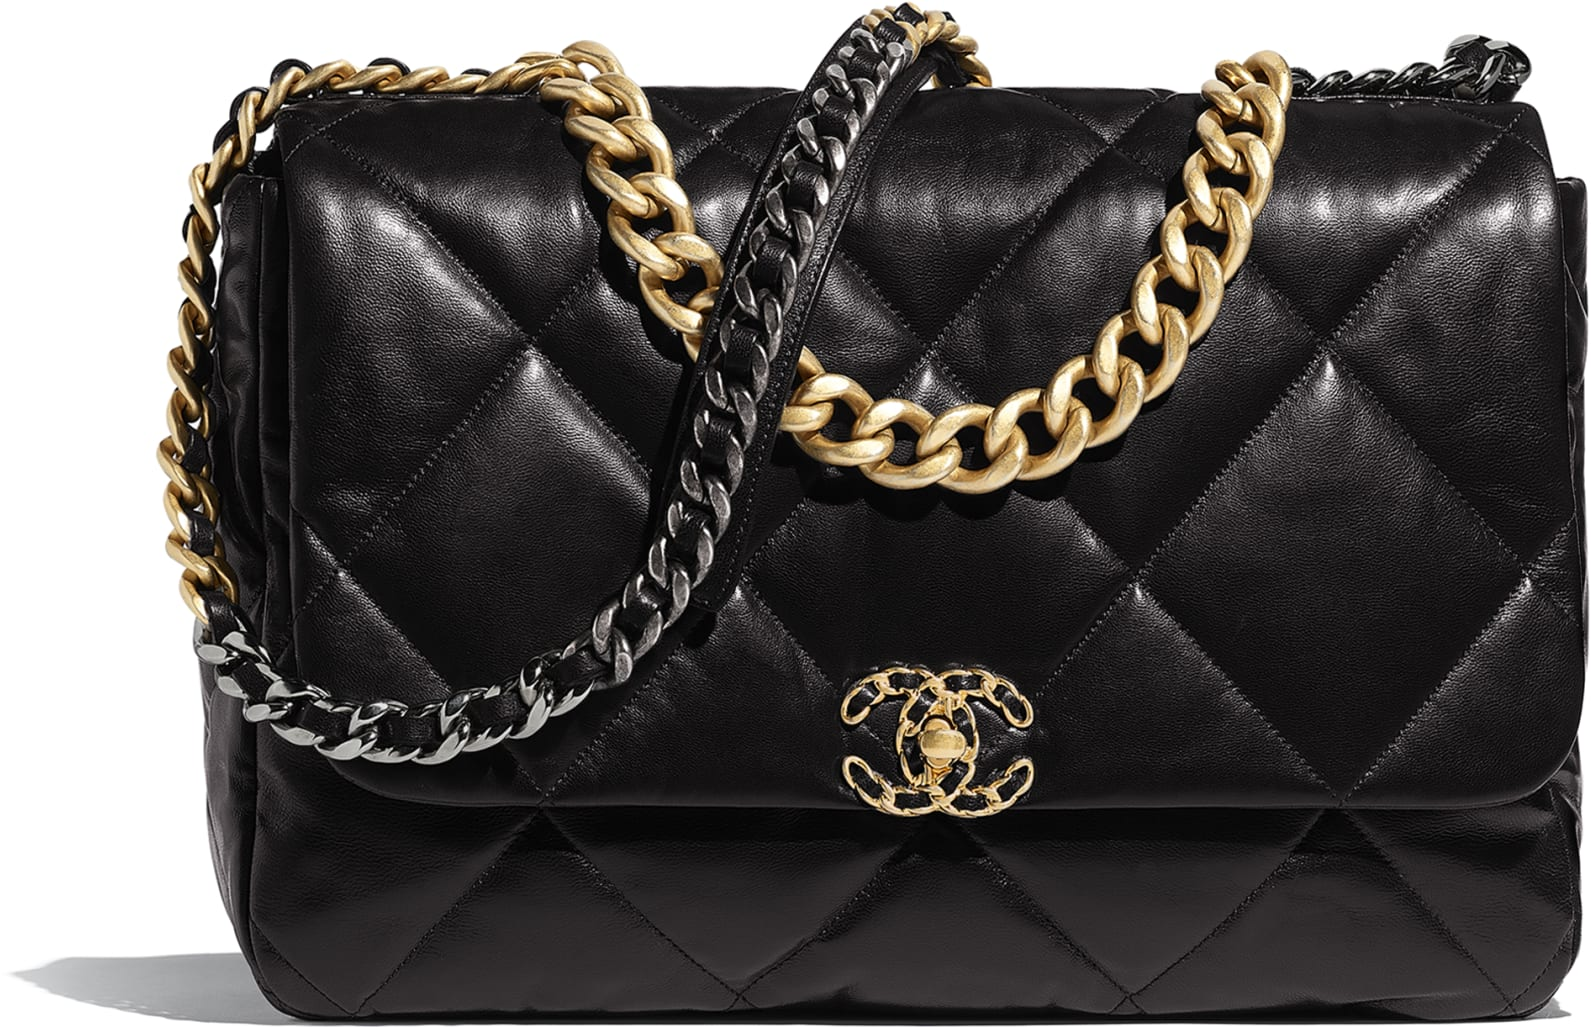 Maxi-Pattentasche CHANEL 19